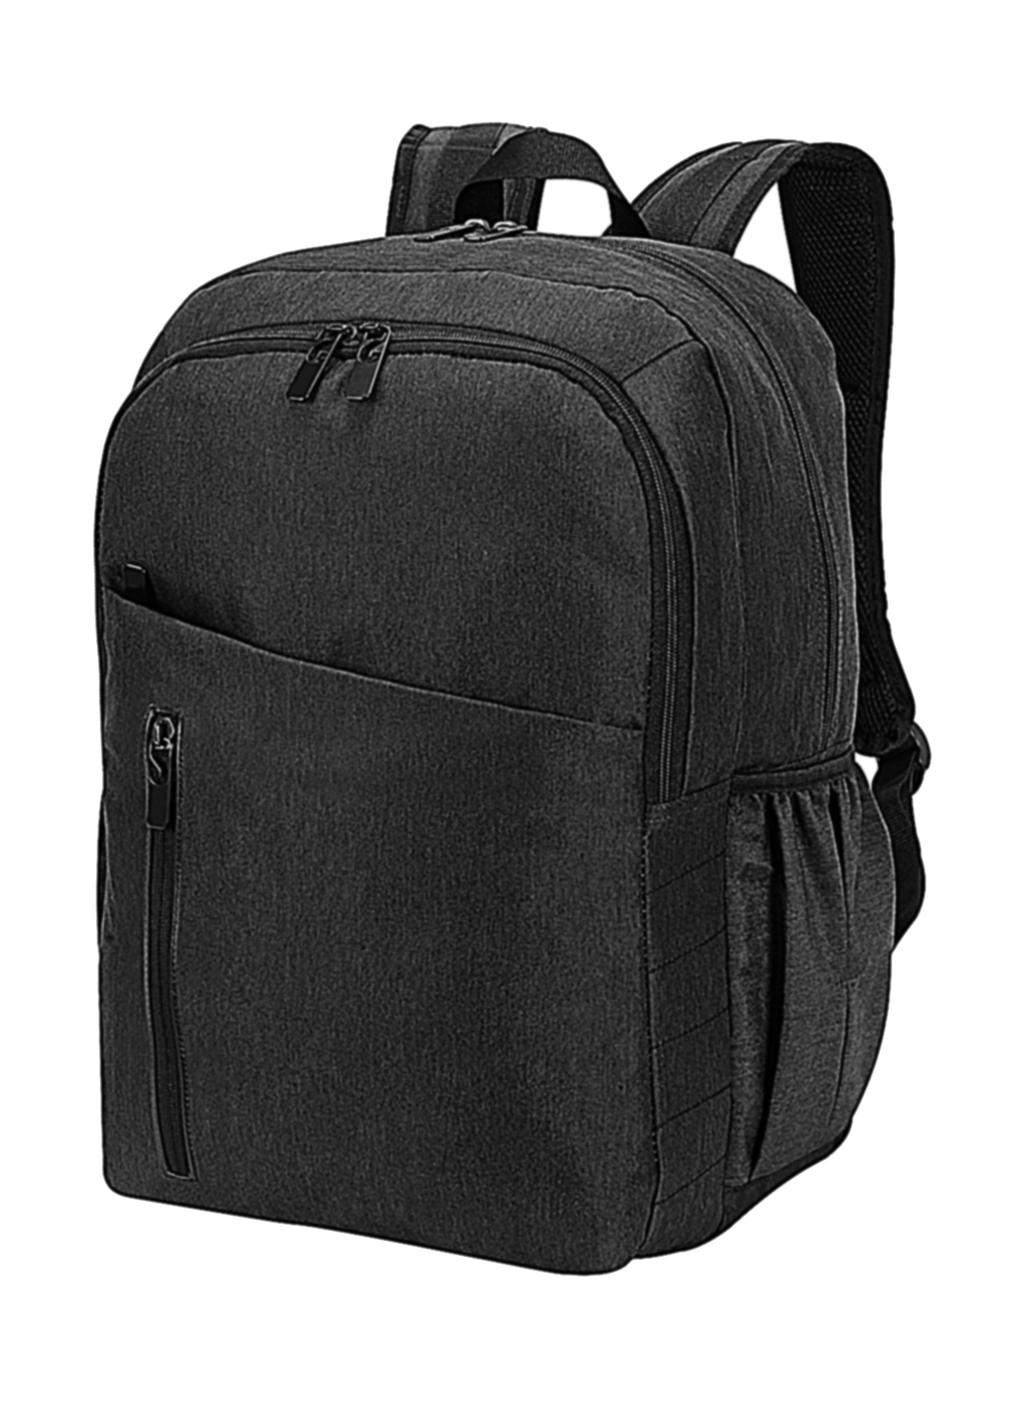 Birmingham Capacity 30L Backpack